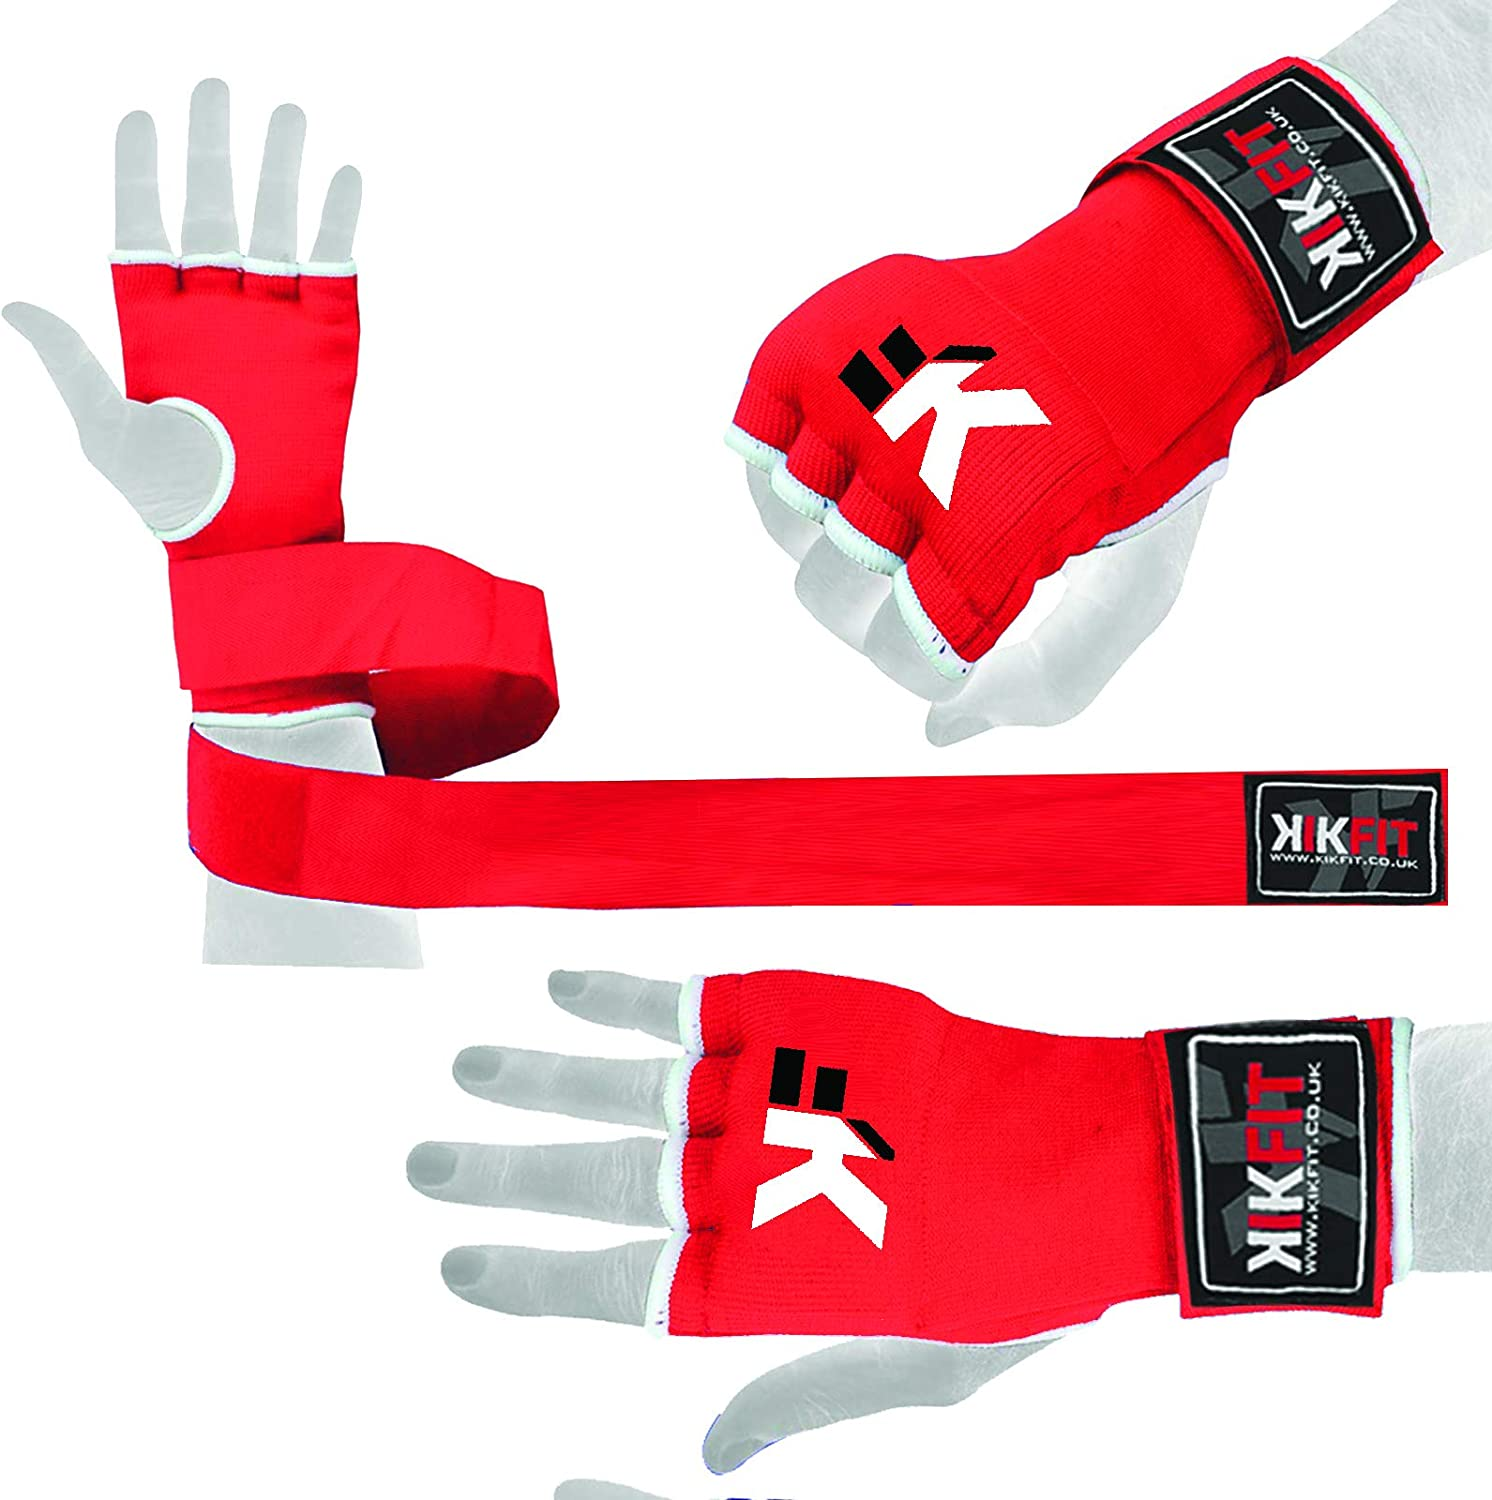 Brand New Prime Pro Hand Wraps Bandages Boxing Gloves 3 Meter Long Grapling Ufc